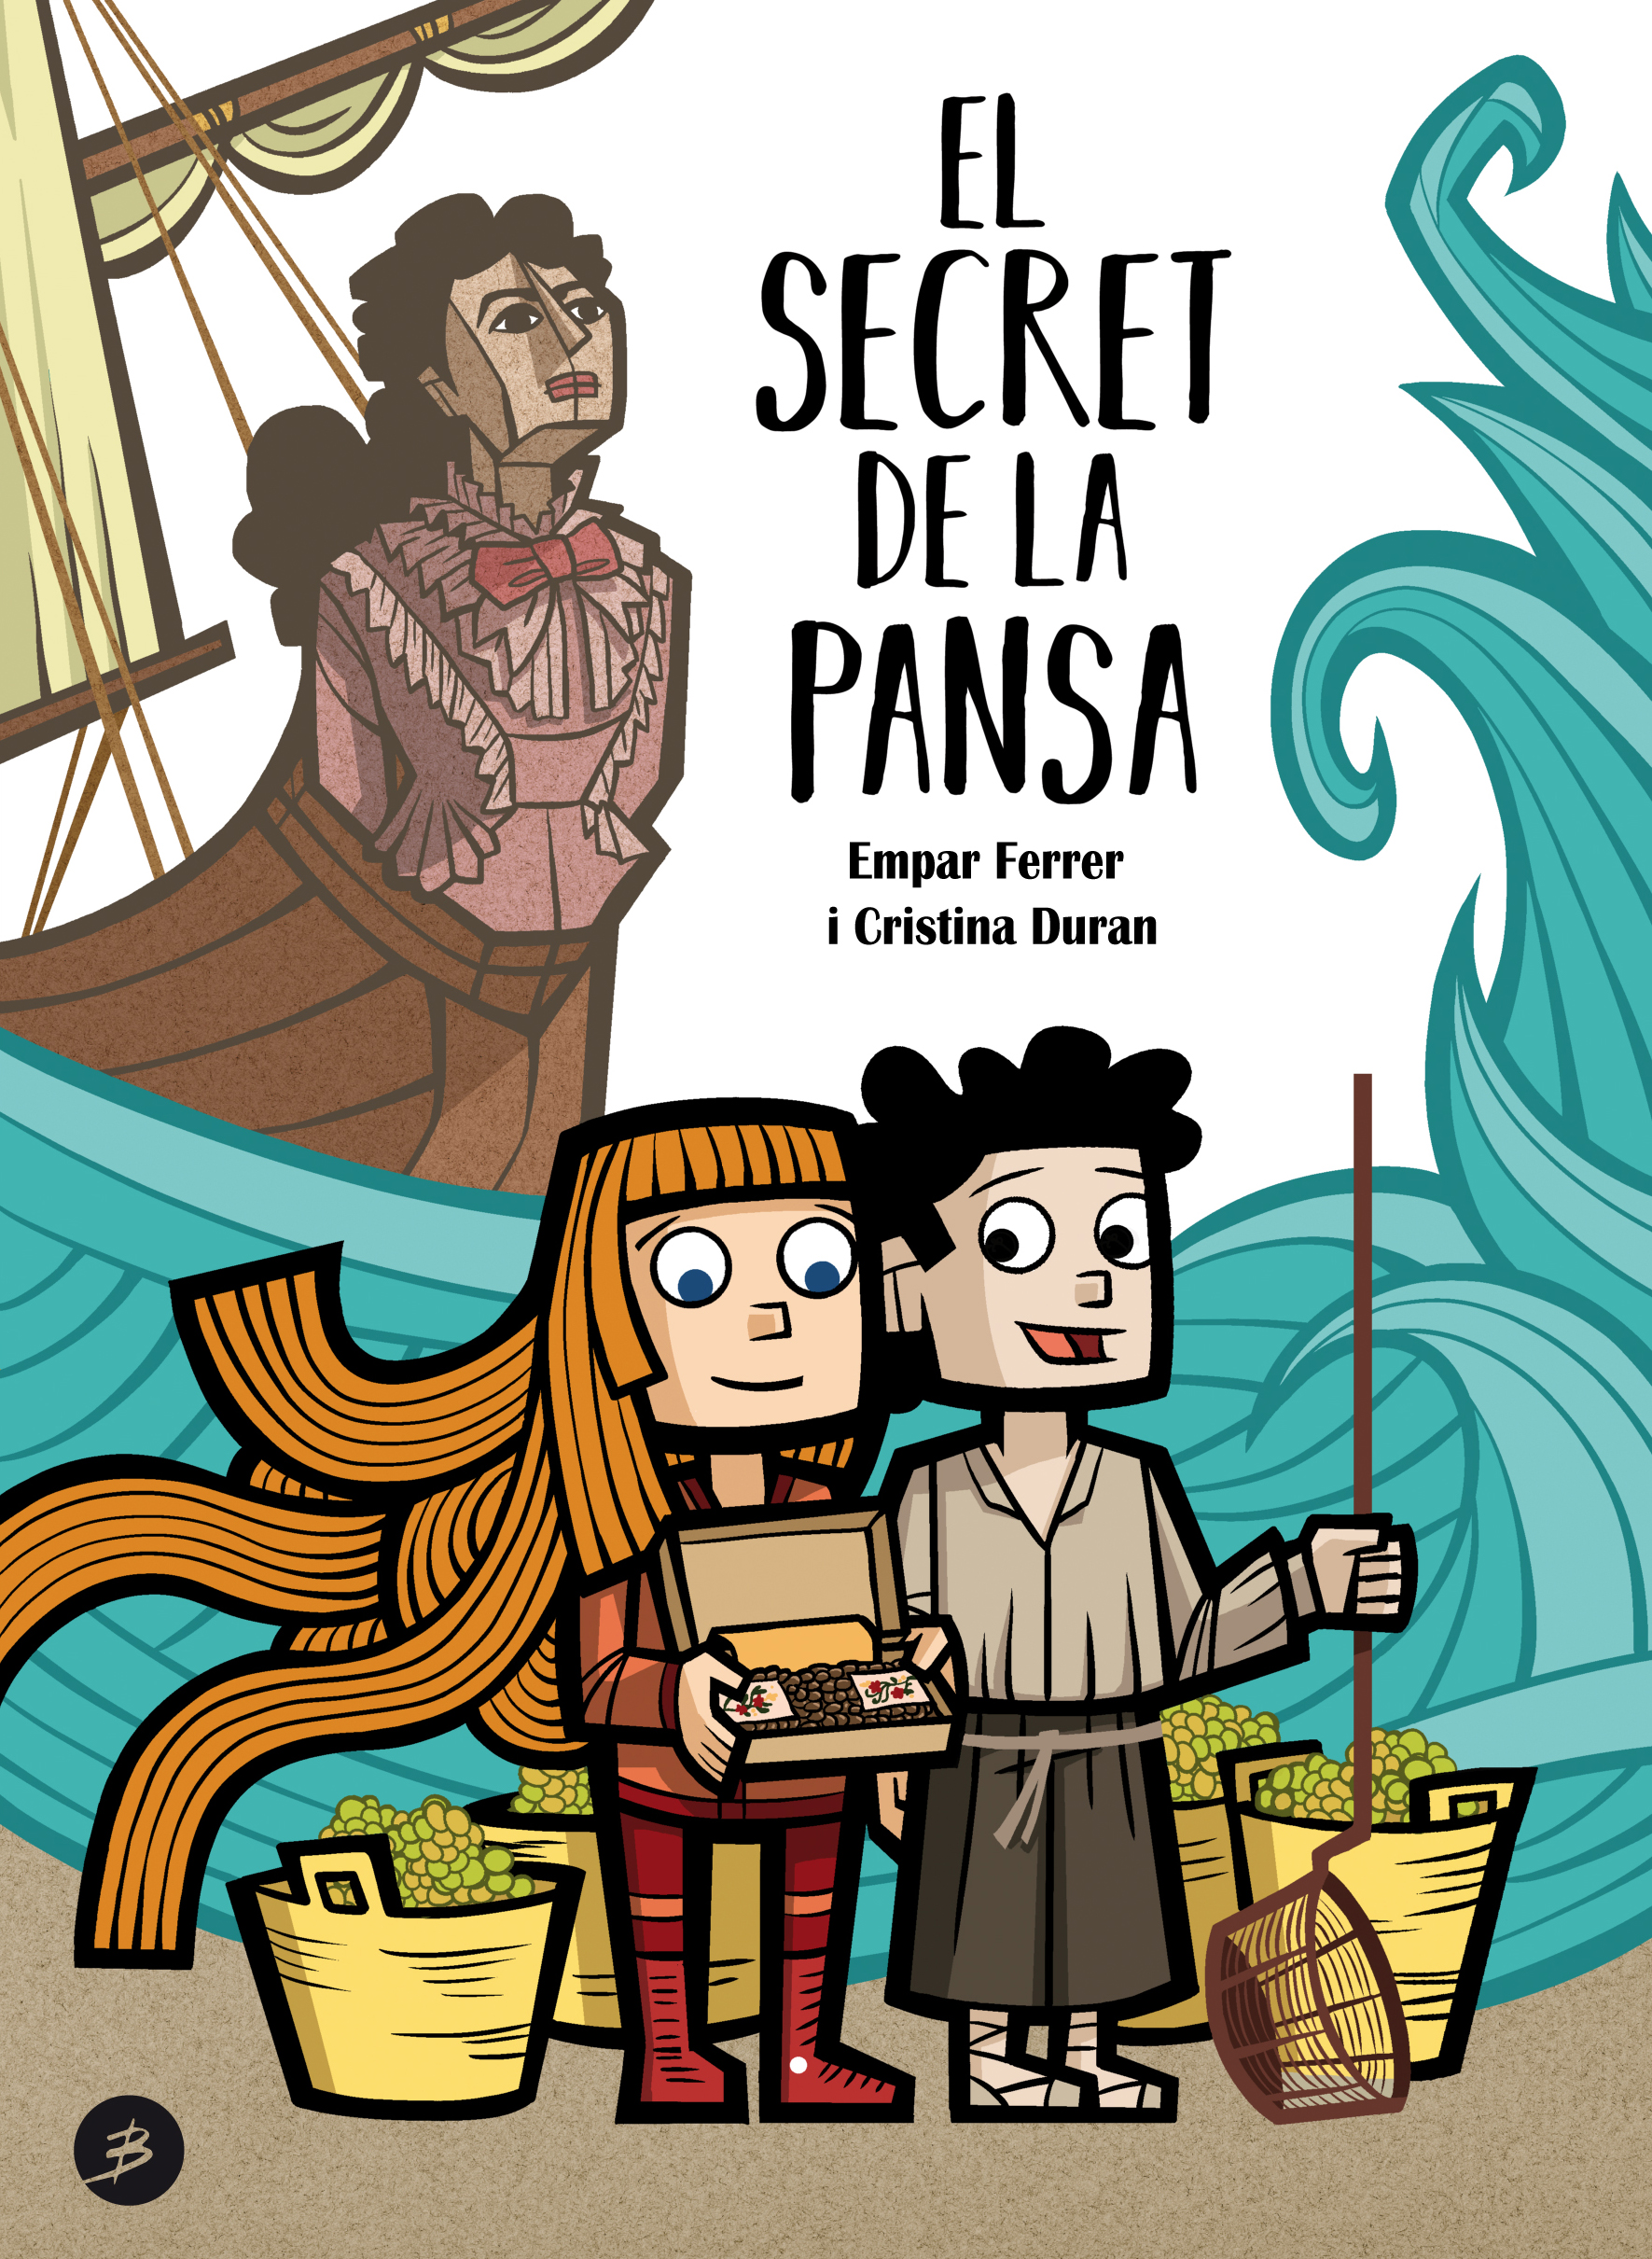 El secret de la pansa